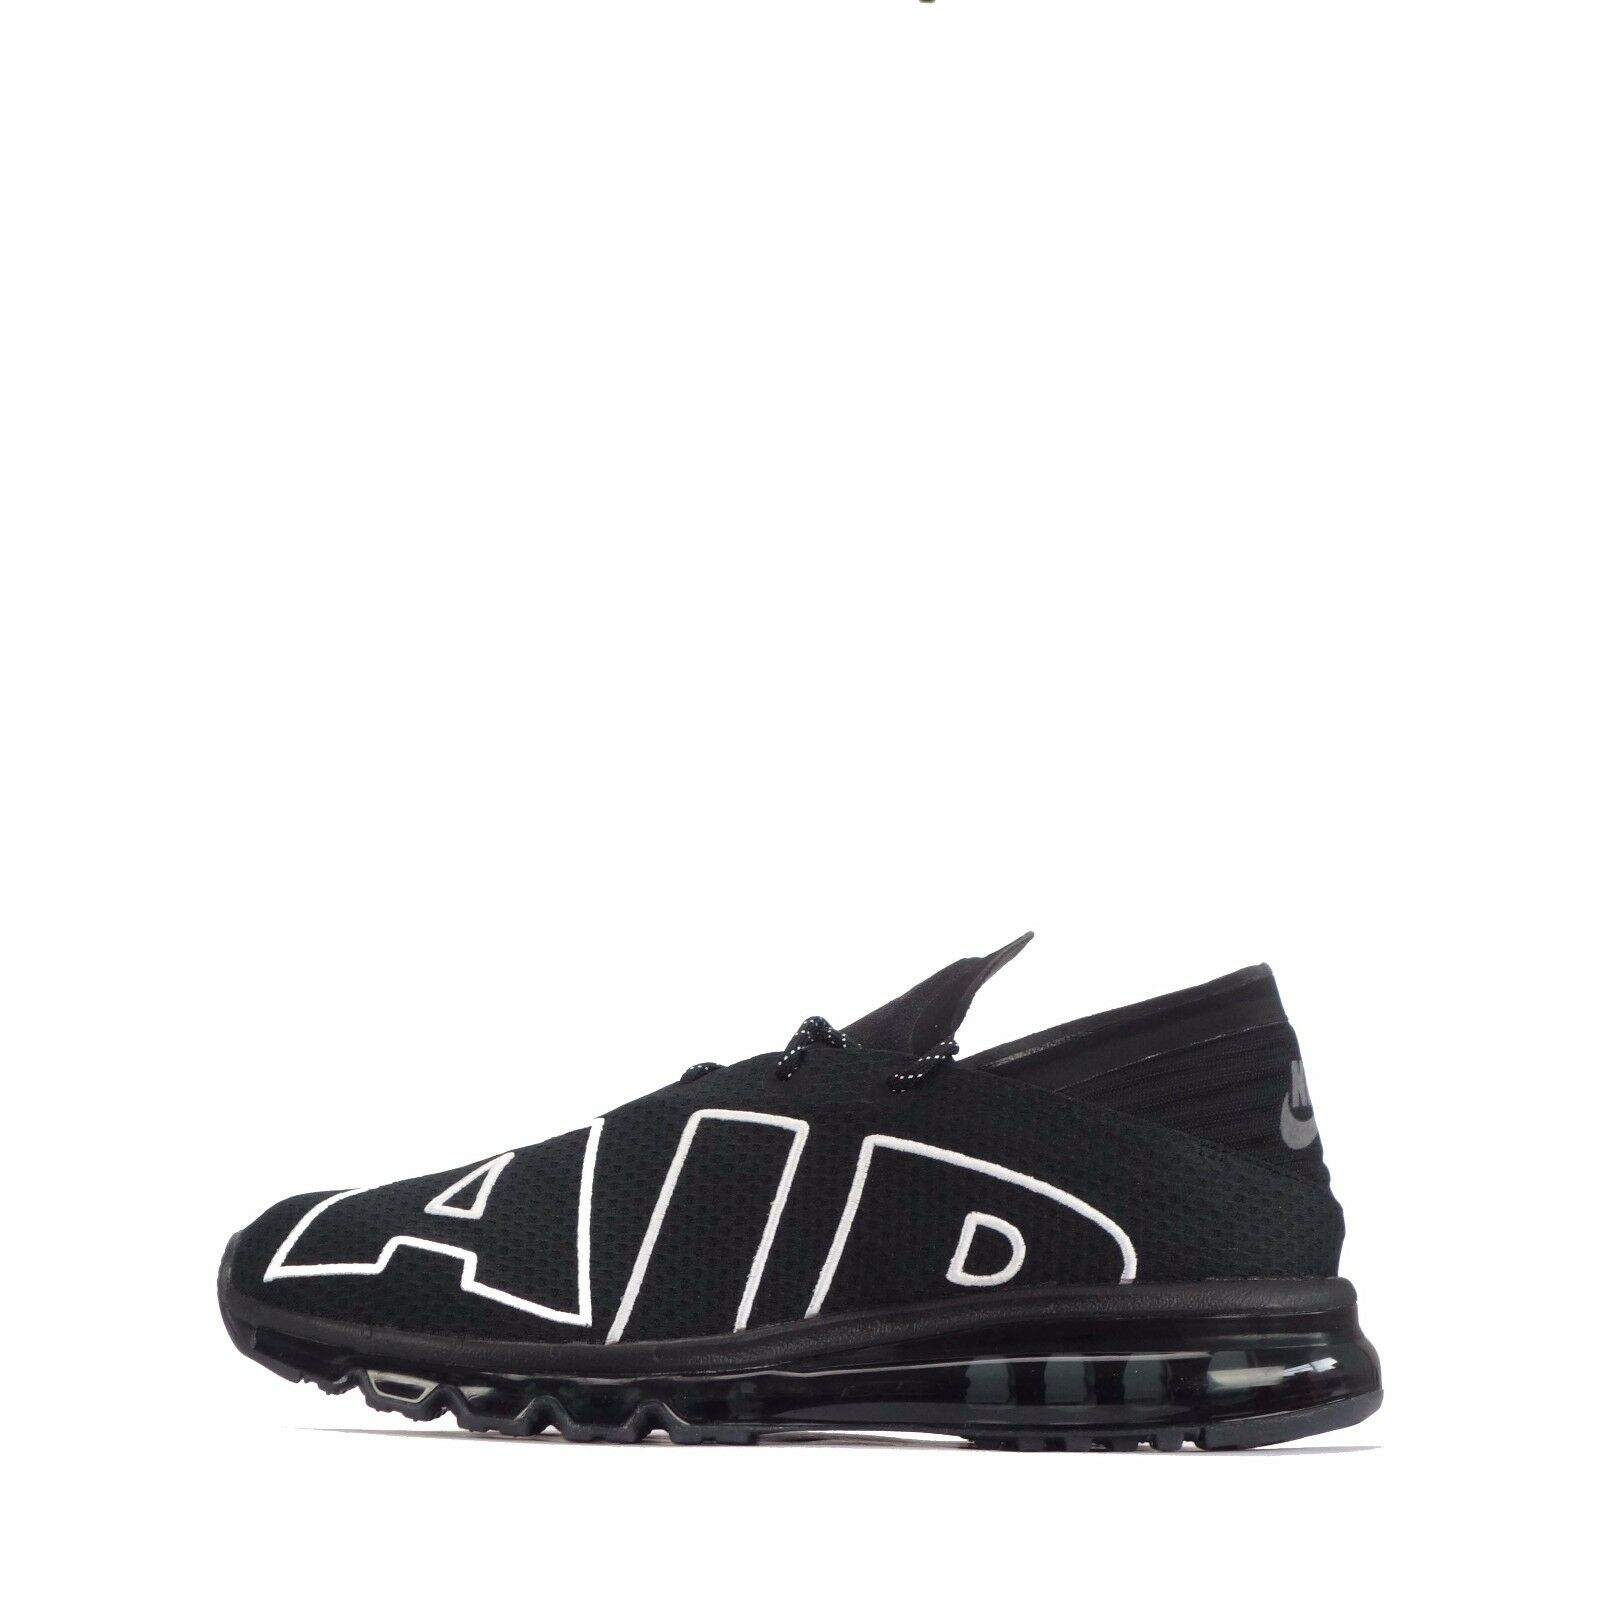 Nike Air Max Flair Men's Shoes Trainers Black/White